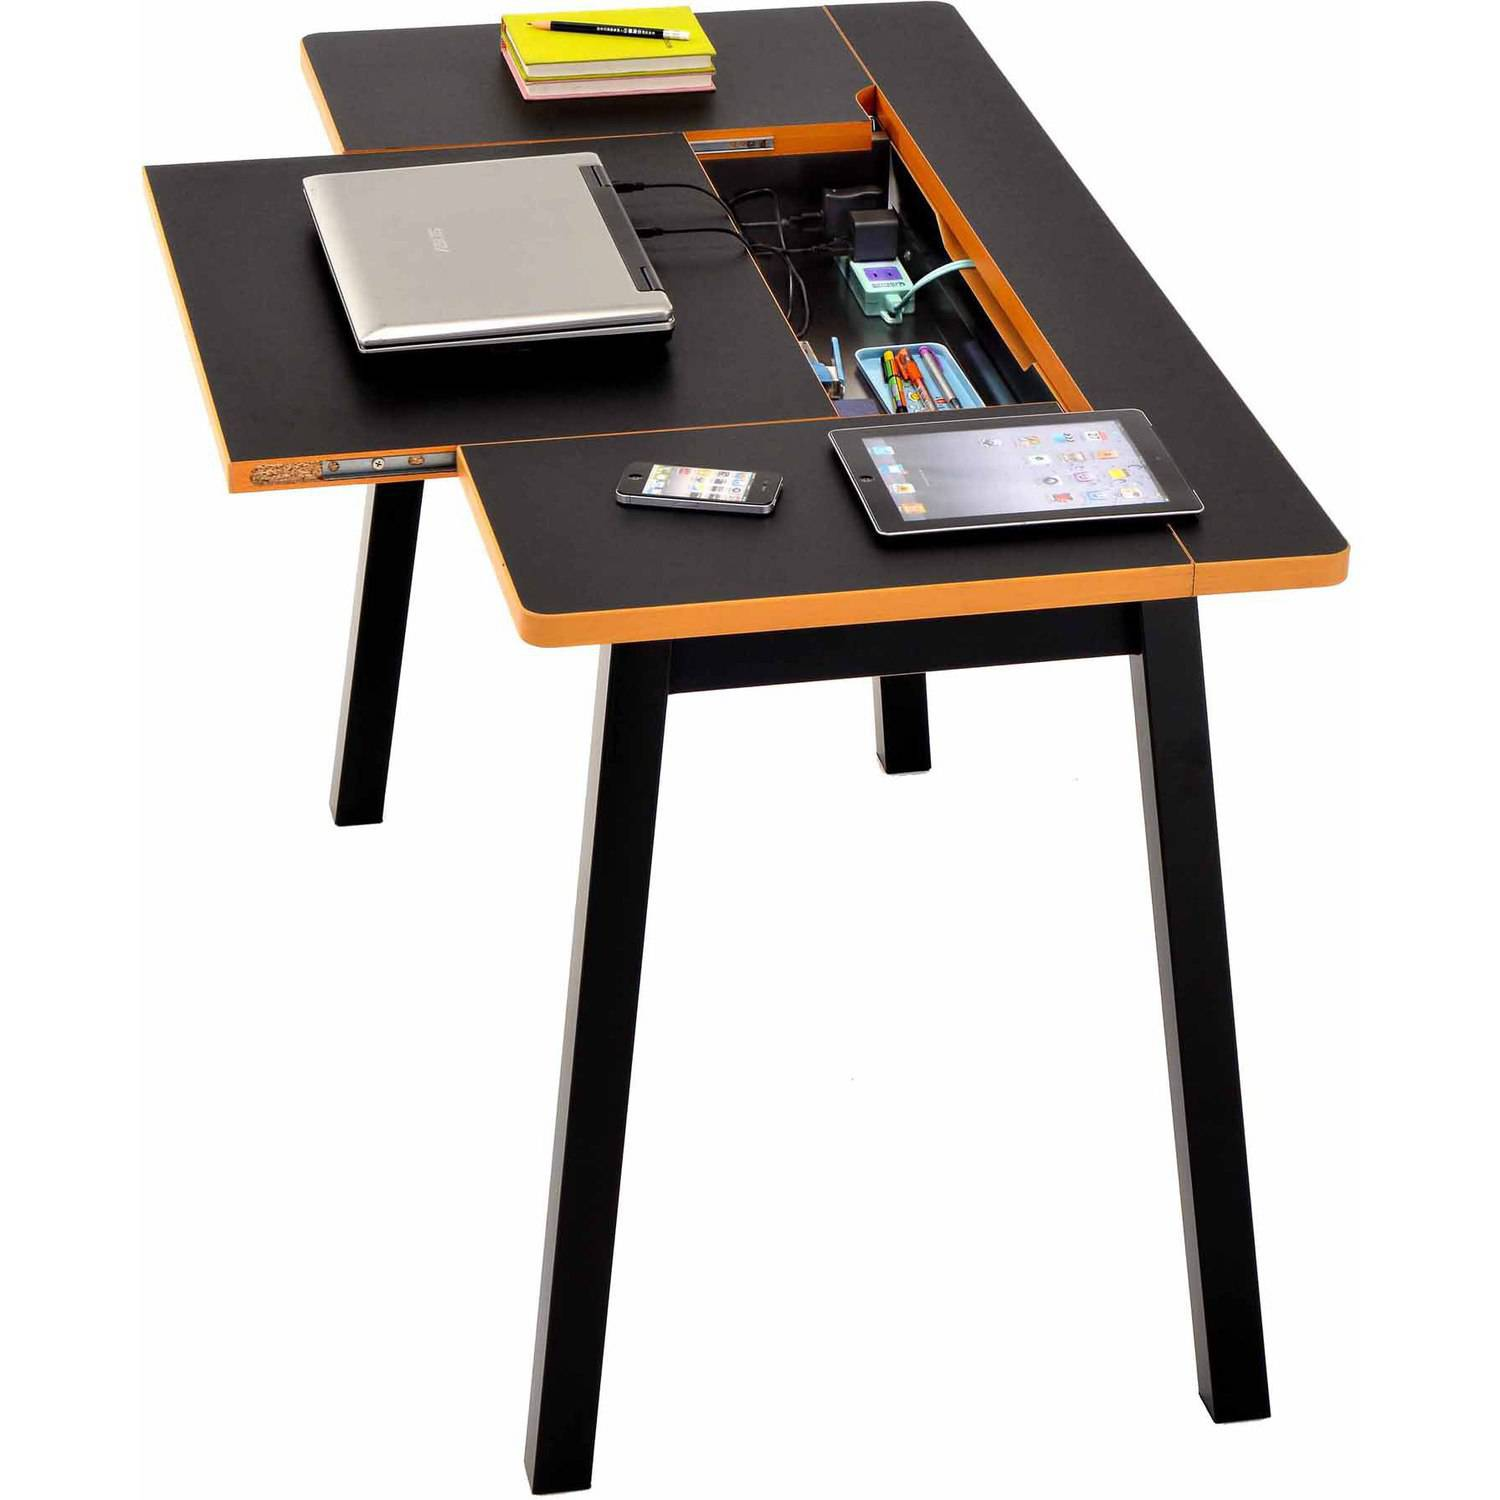 Flexx Multi-Functional Desk with Storage, Multiple Colors Image 1 of 9